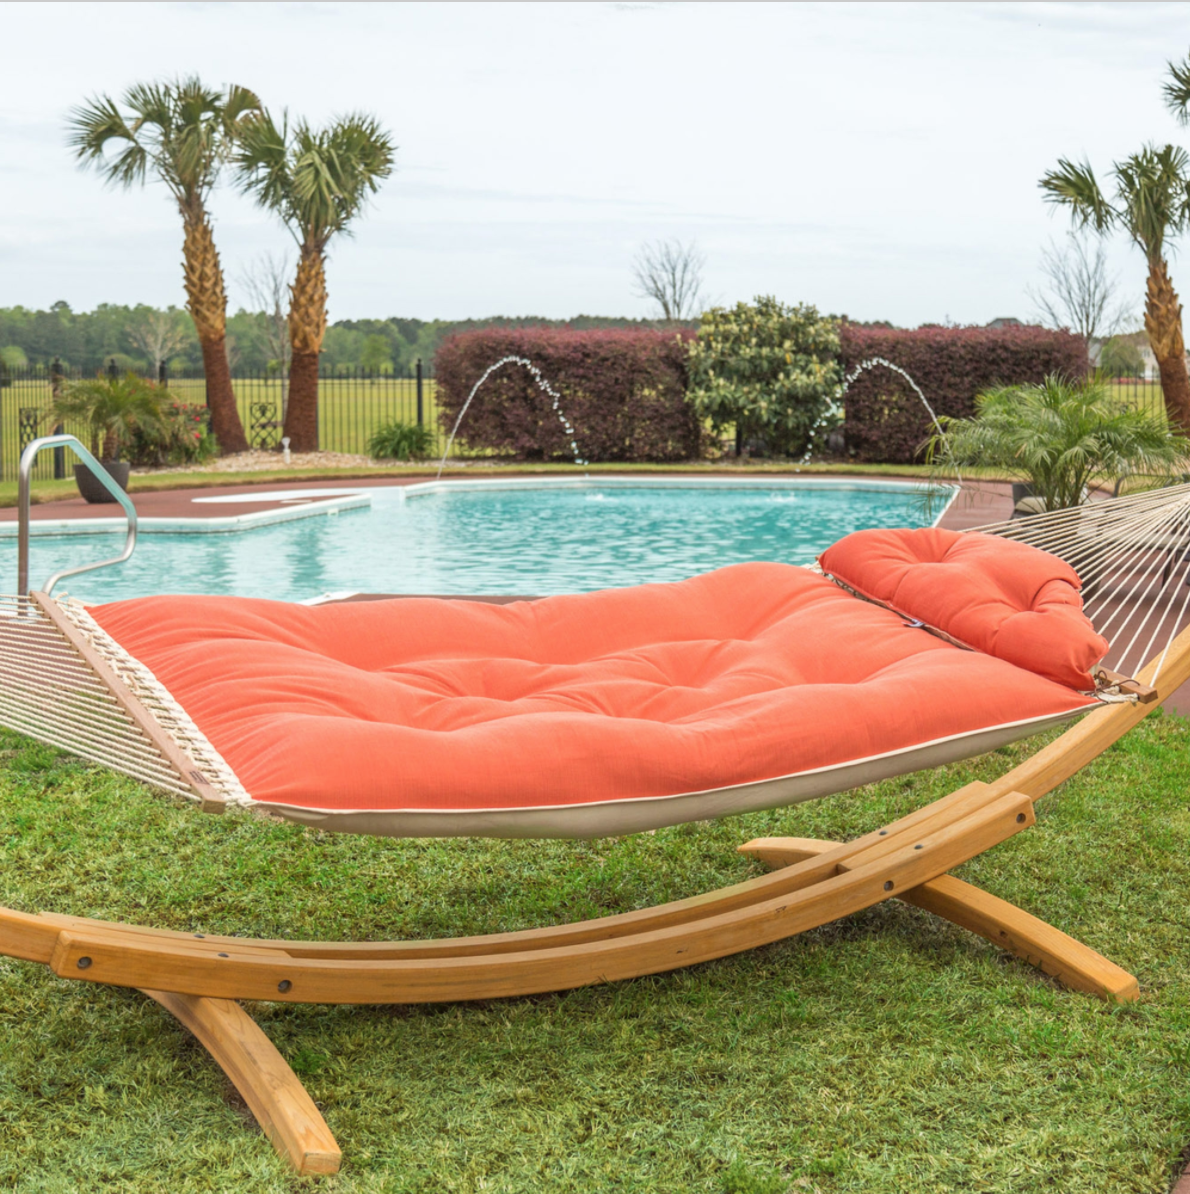 Tufted Hammock on Wooden Stand